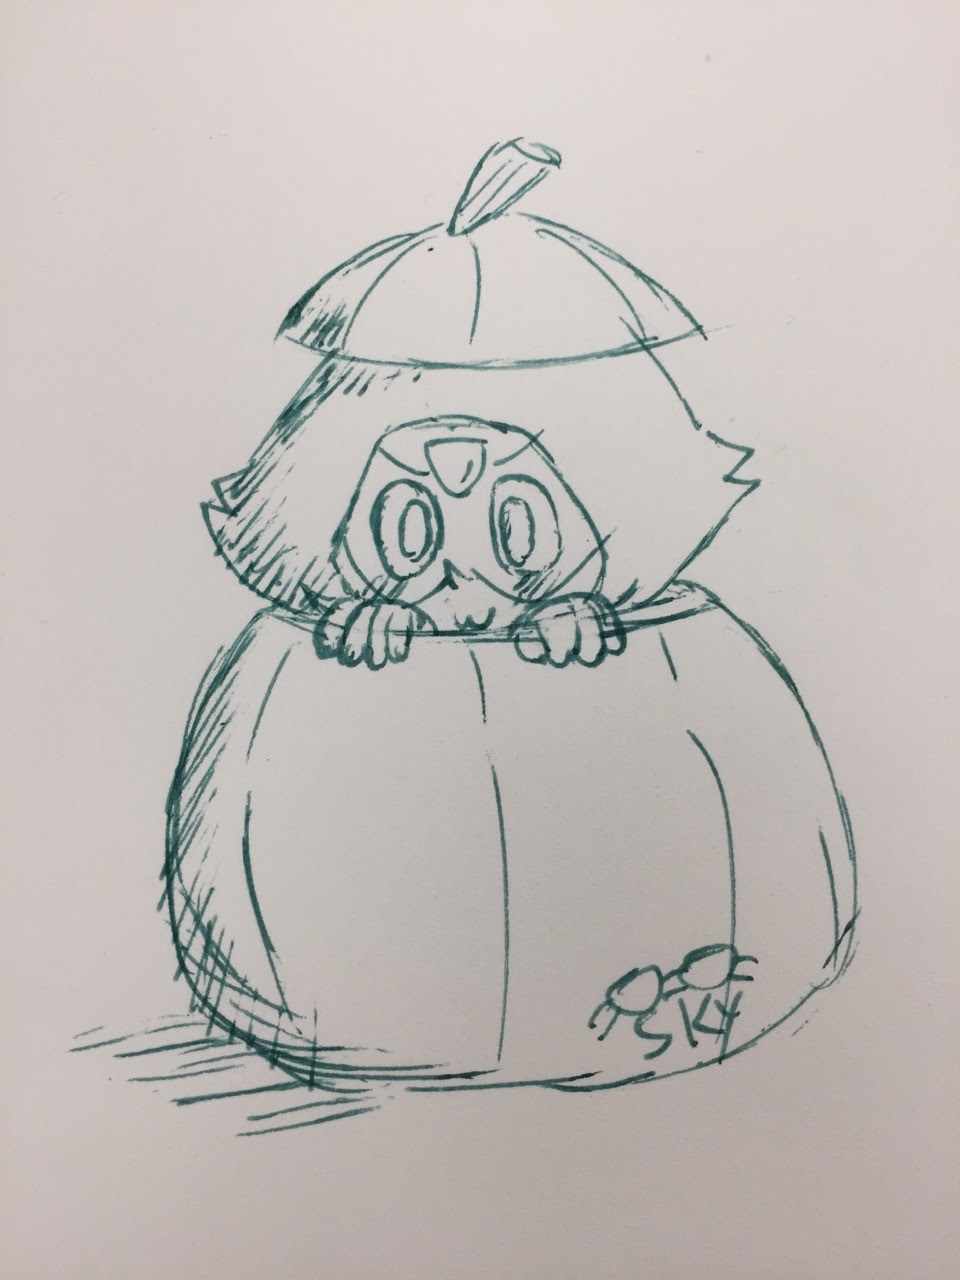 Inktober Day 4 cause I need to catch up lol. Peridot in a pumpkin suggested by a friend.